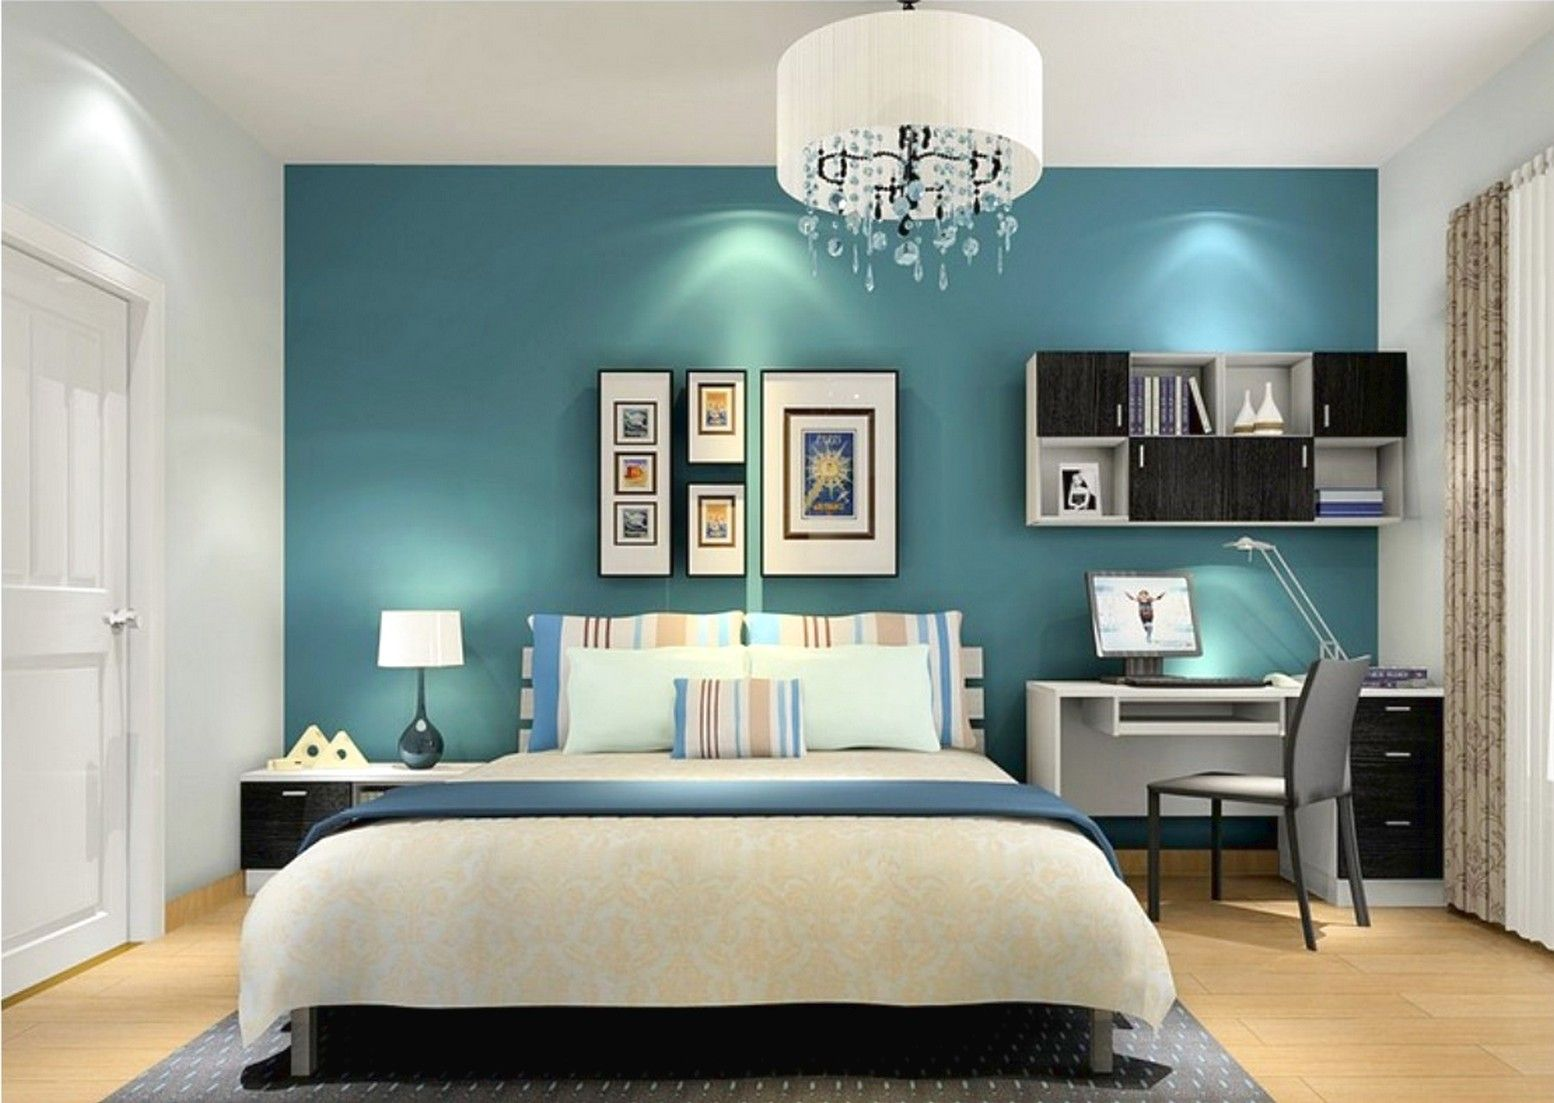 What Color Should I Paint My Room -  #Interiors,  #WhatColorShouldIPaintMyRoomDining #WhatColorShouldIPaintMyRoominHome #WhatColorShouldIPaintMyRoomIndoor #WhatColorShouldIPaintMyRoomSmall #WhatColorShouldIPaintMyRoomWall